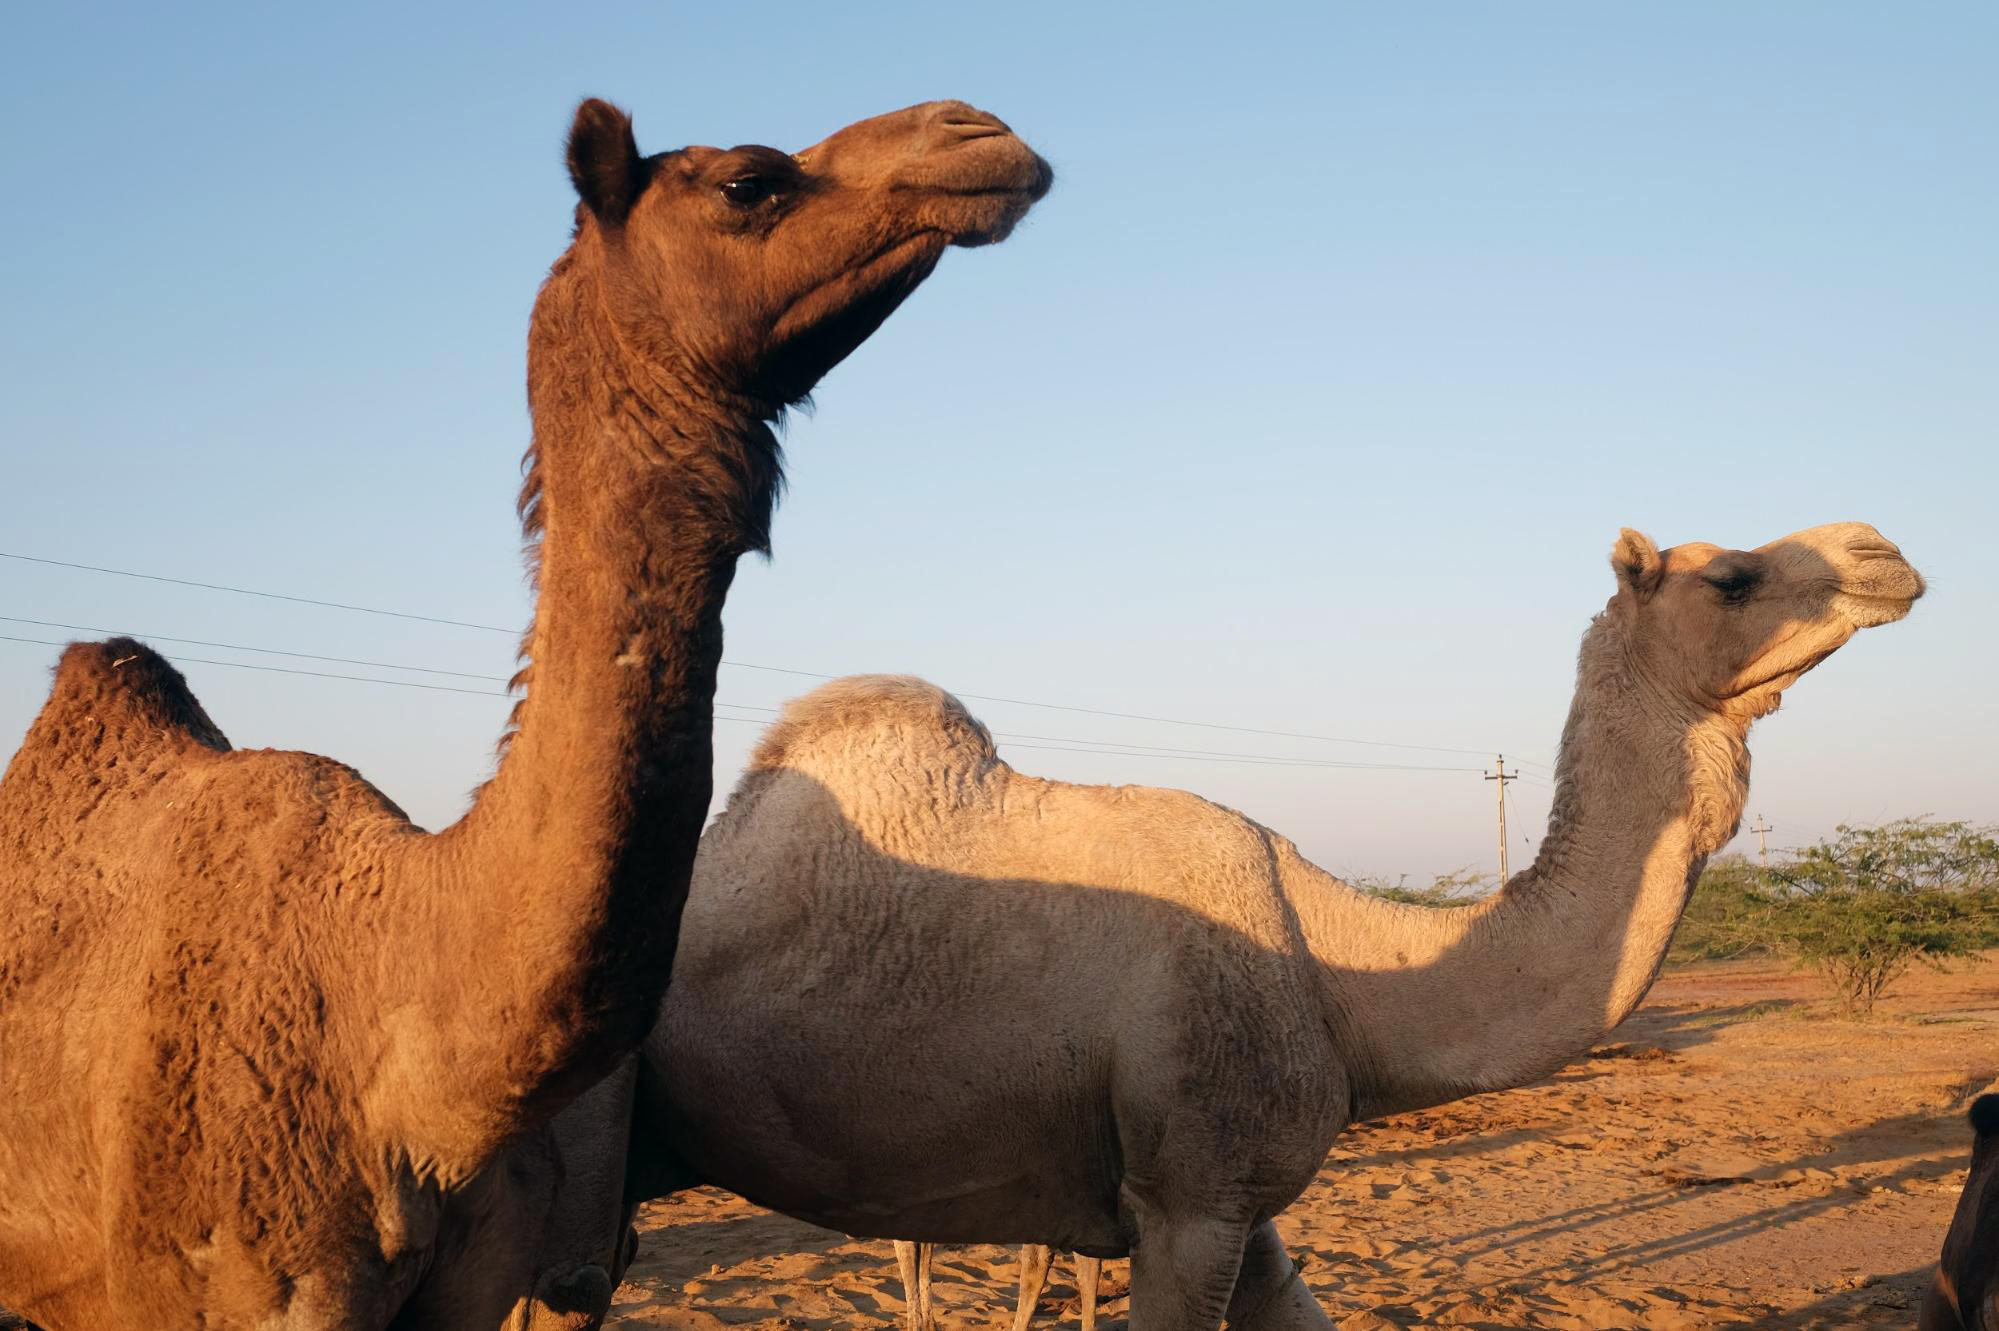 camel in hindi Read this short essay on camel in hindi language home  related essays: story of the beautiful camel in hindi story of the arab and the camel in hindi story of the monkey and the camel in hindi story of the innocent camel in hindi.